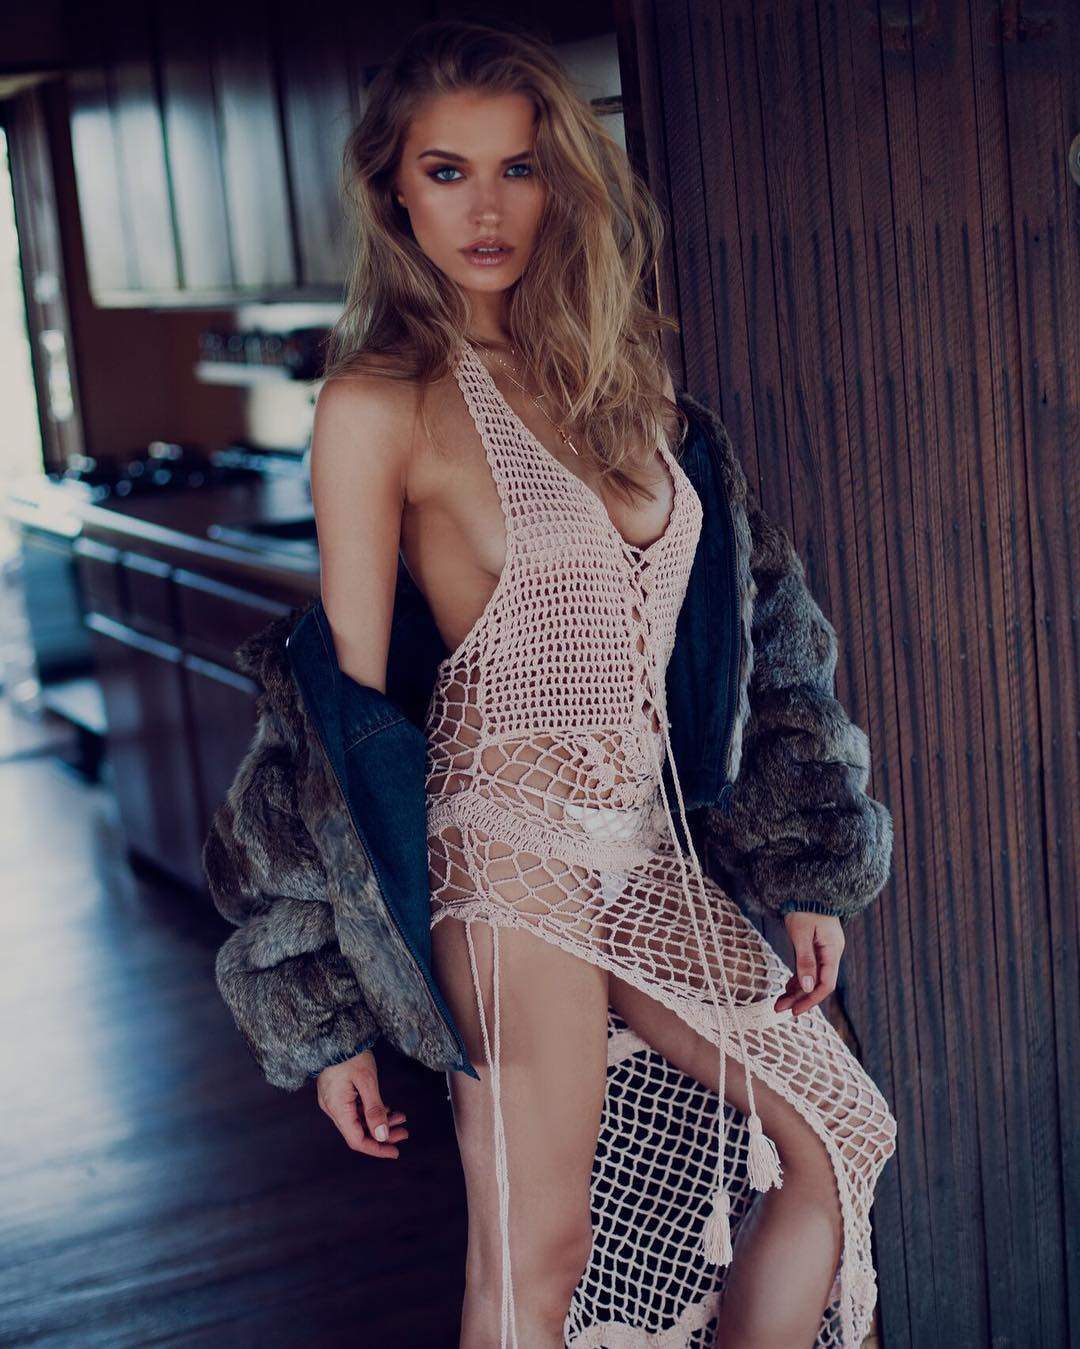 tanya-mityushina-sexy-thefappening-so-7